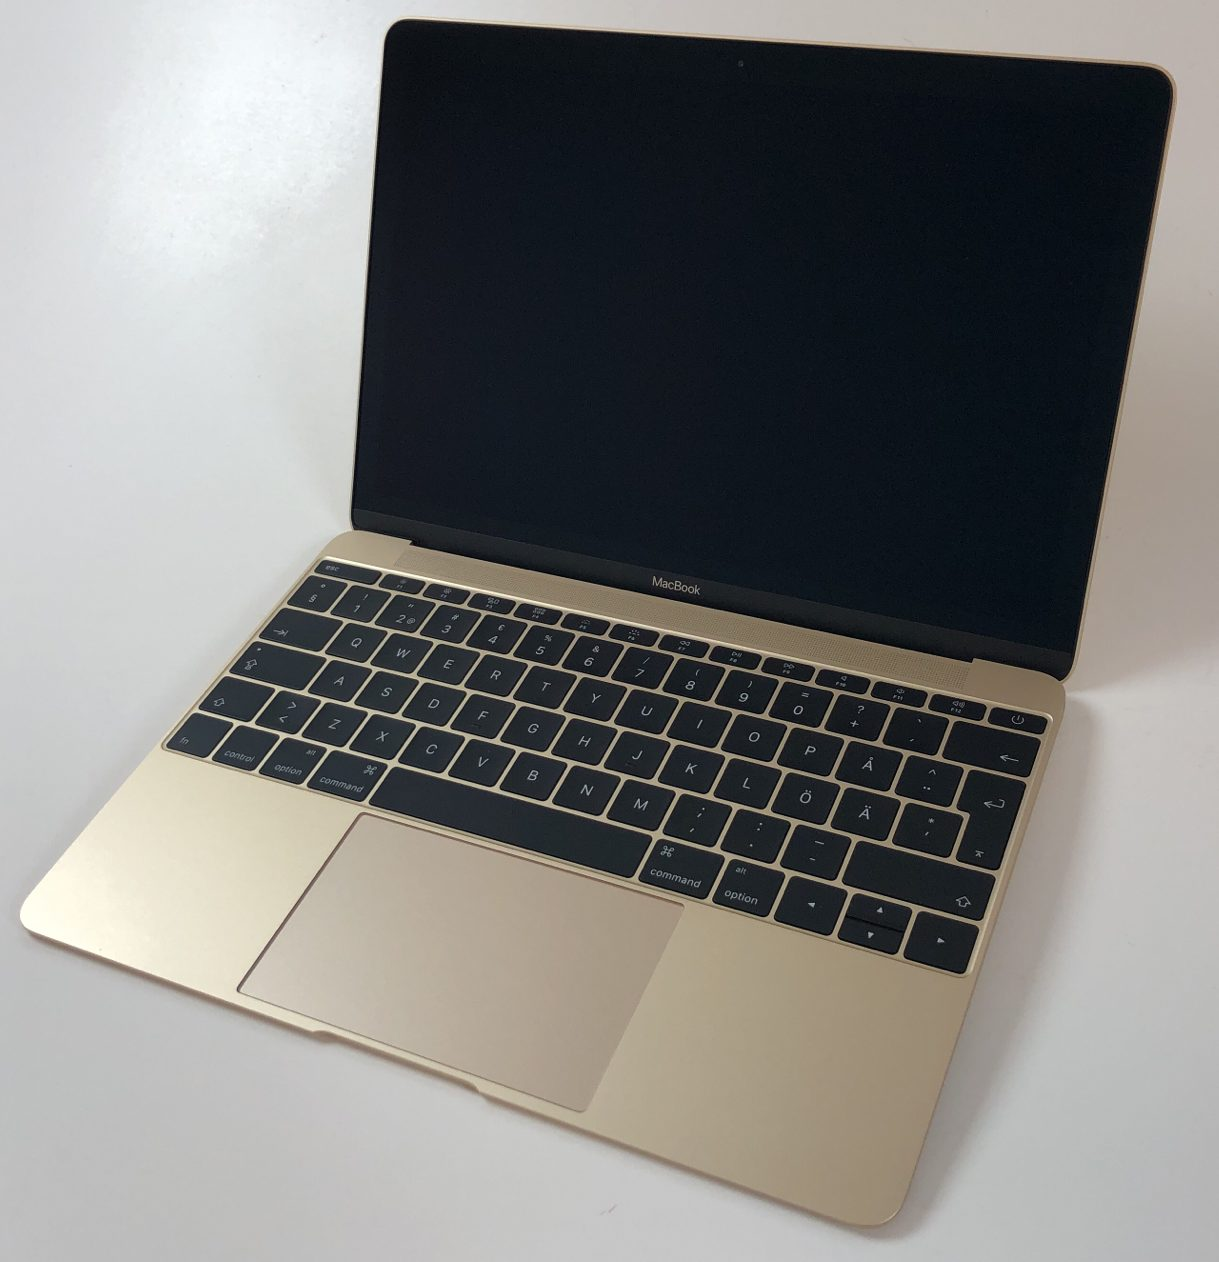 "MacBook 12"" Early 2016 (Intel Core m5 1.2 GHz 8 GB RAM 512 GB SSD), Gold, Intel Core m5 1.2 GHz, 8 GB RAM, 512 GB SSD, Kuva 1"